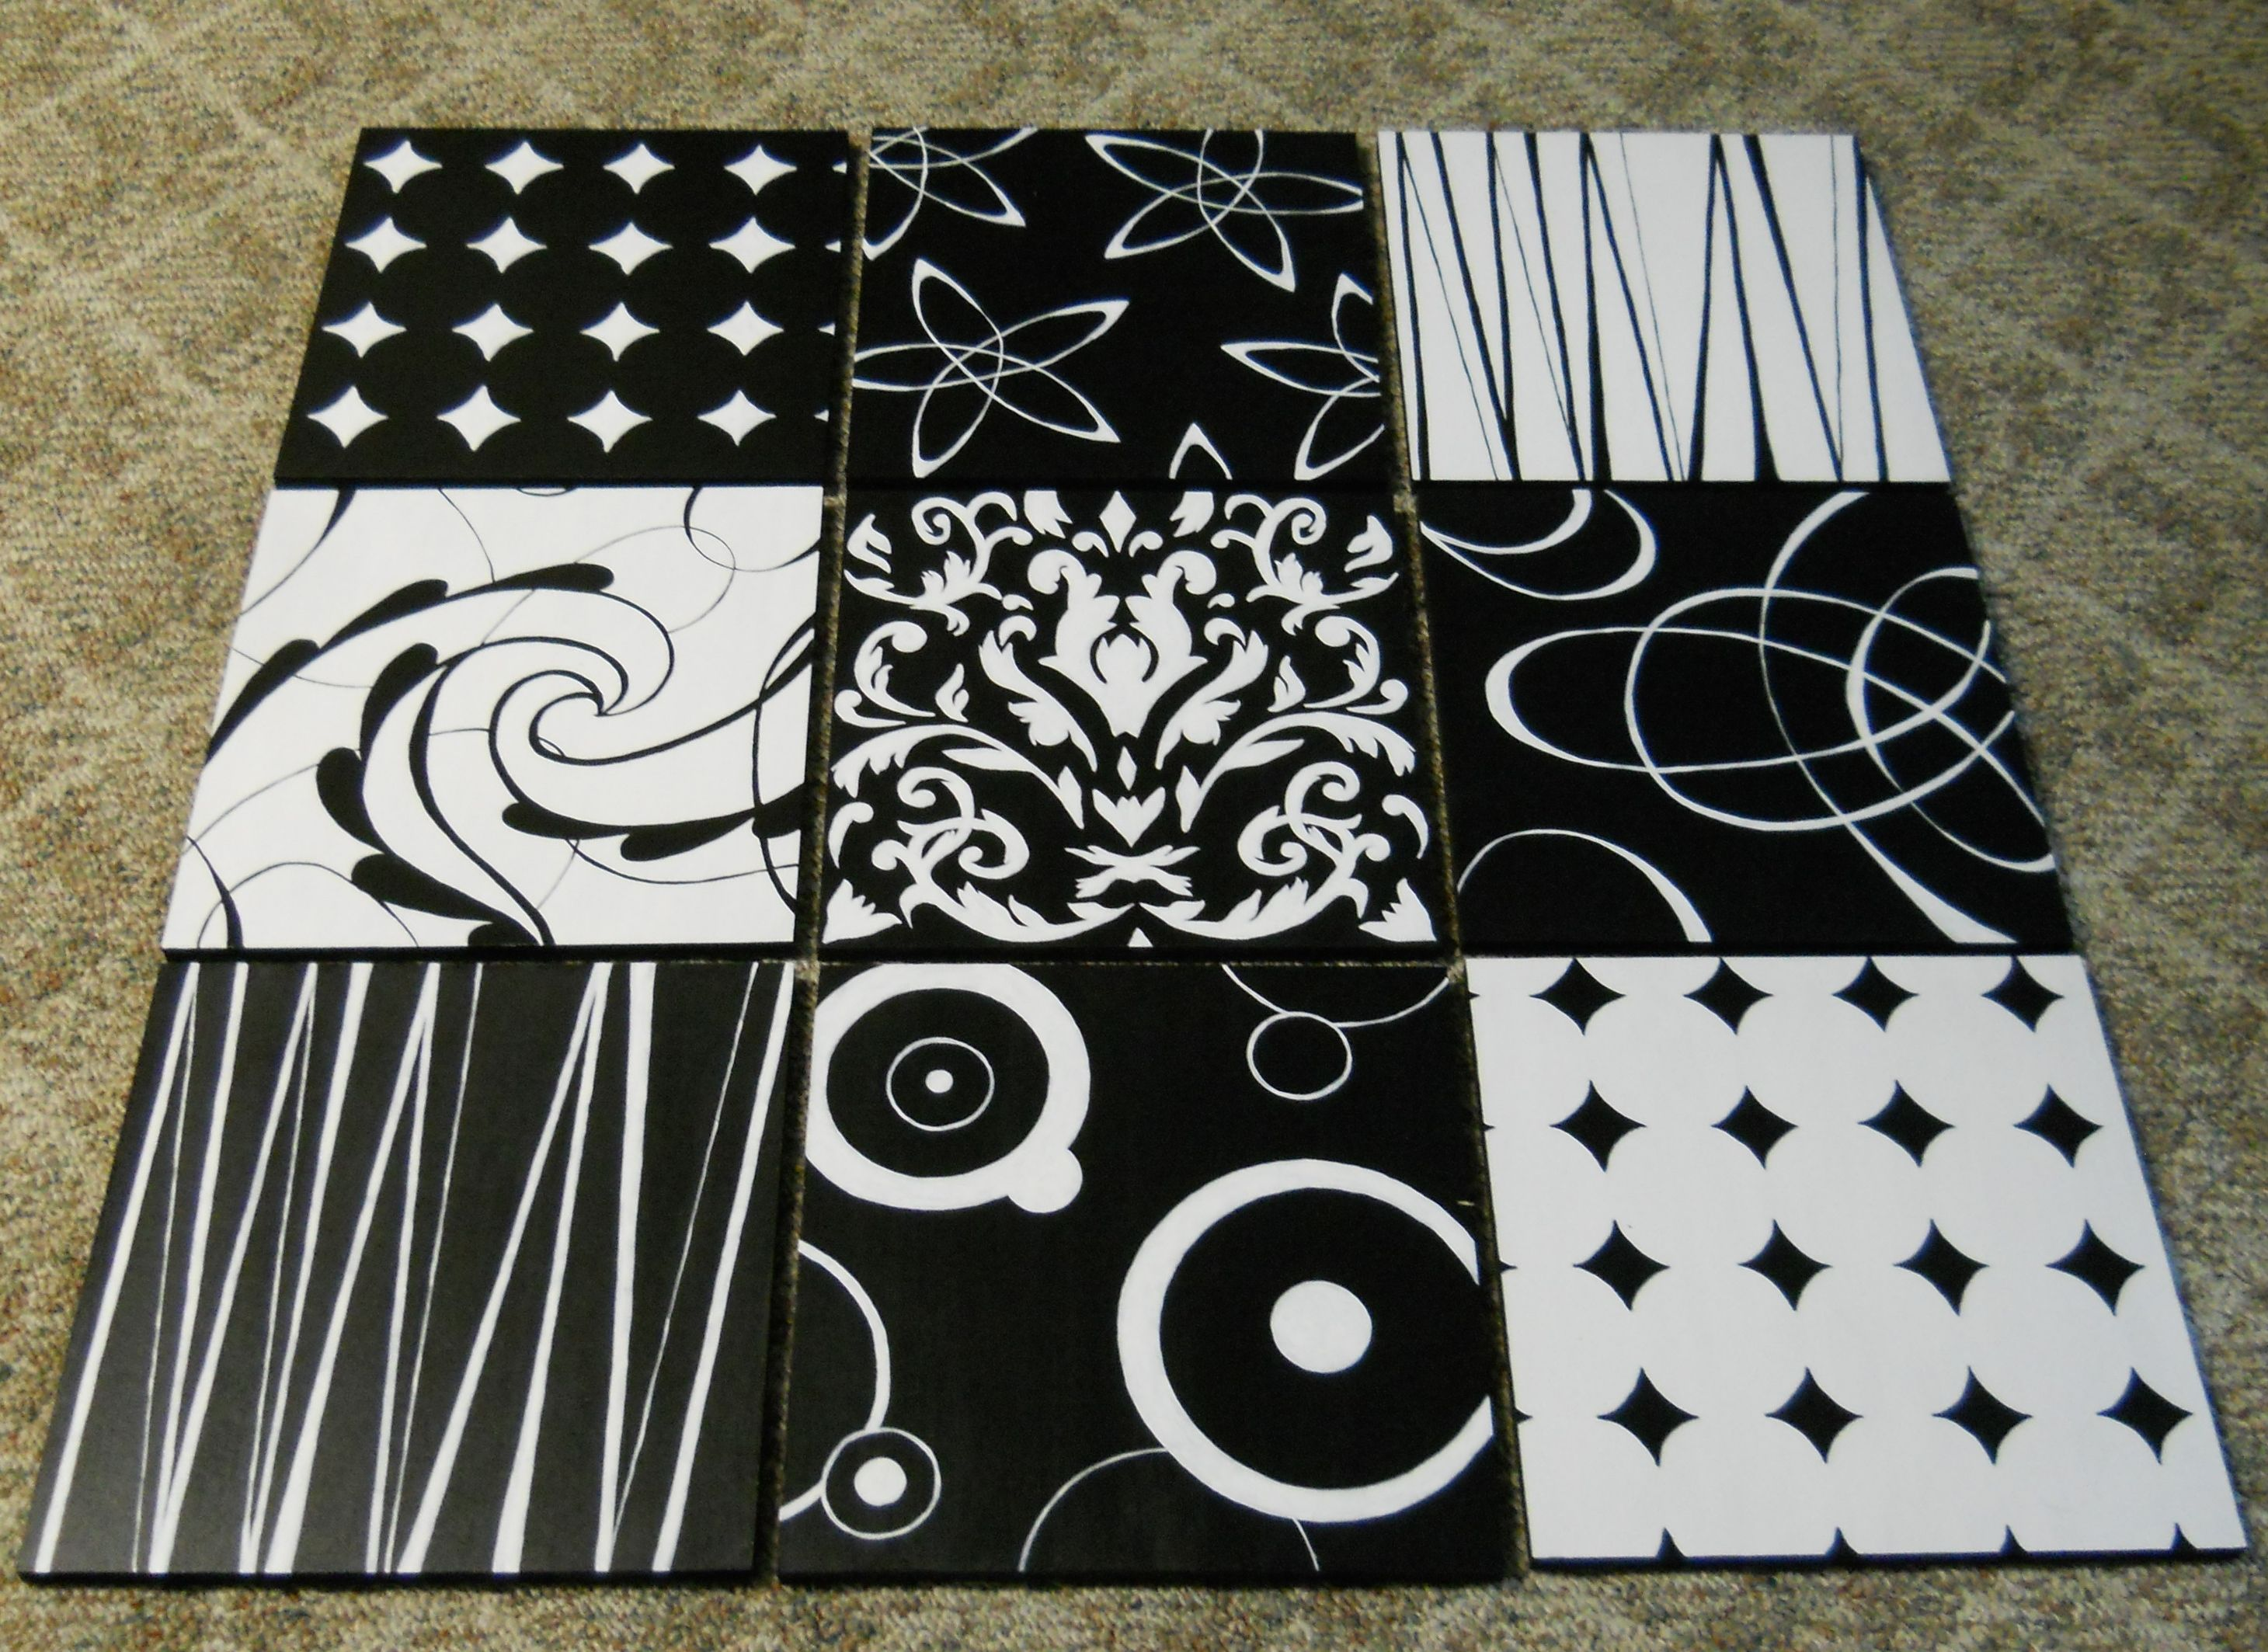 A black and white 9 panel wall hanging inspired by diy scrapbook a black and white 9 panel wall hanging inspired by diy scrapbook page wall art sciox Image collections